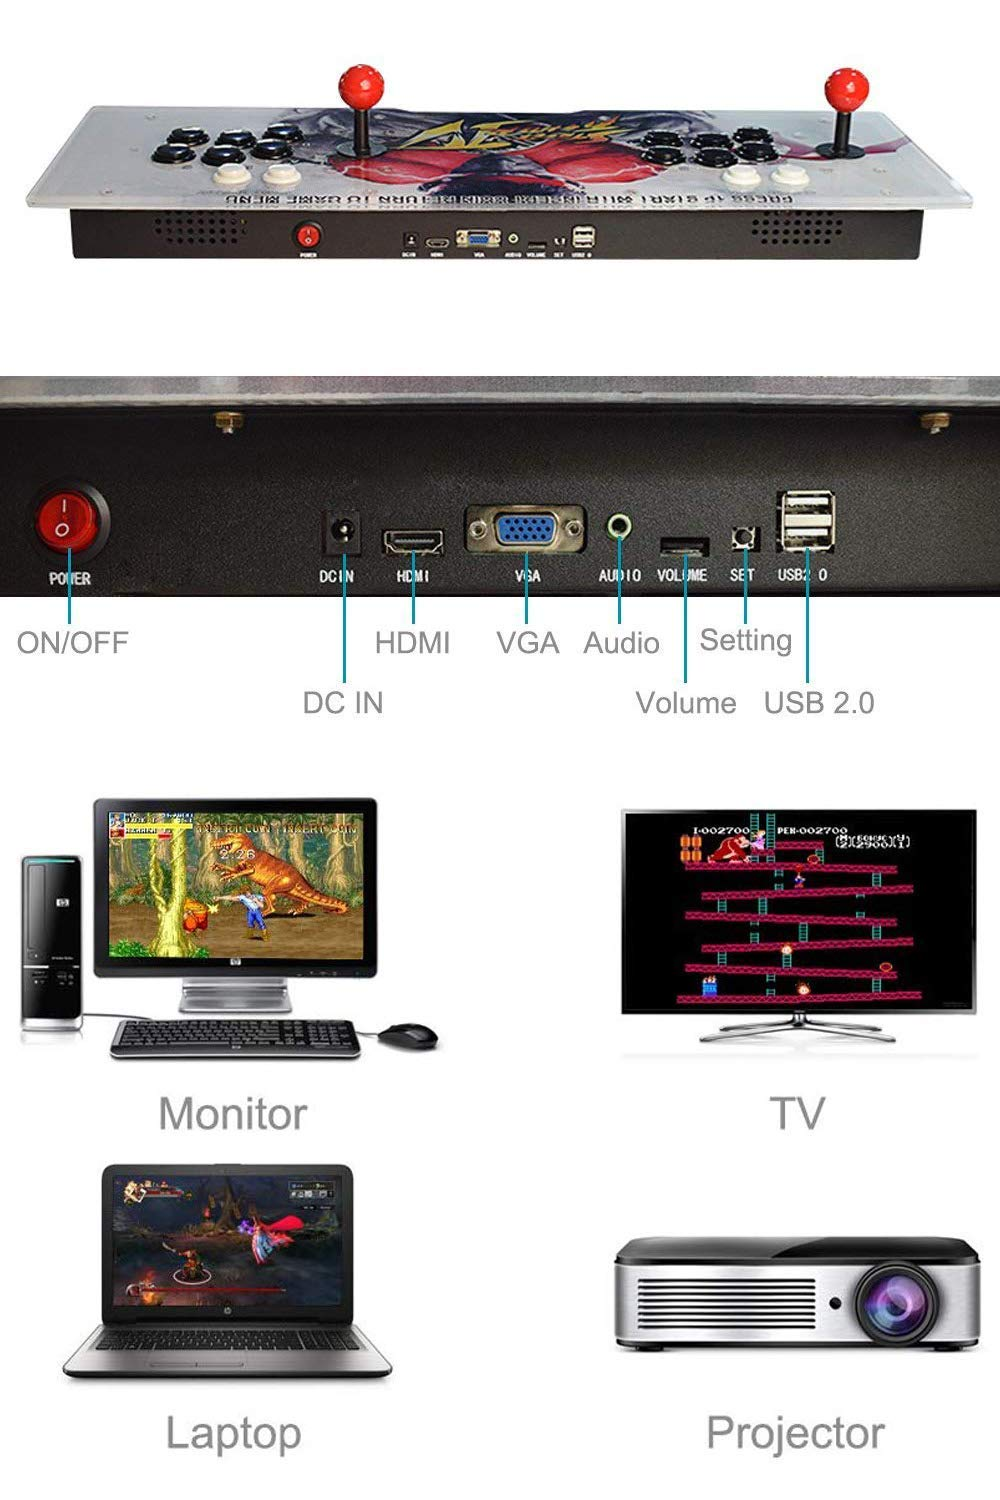 PinPle Arcade Game Console 1080P 3D & 2D Games 2350 2 in 1 Pandora's Box 3D 2 Players Arcade Machine with Arcade Joystick Support Expand Games for PC / Laptop / TV / PS4 (Arcade Machine) by PinPle (Image #3)